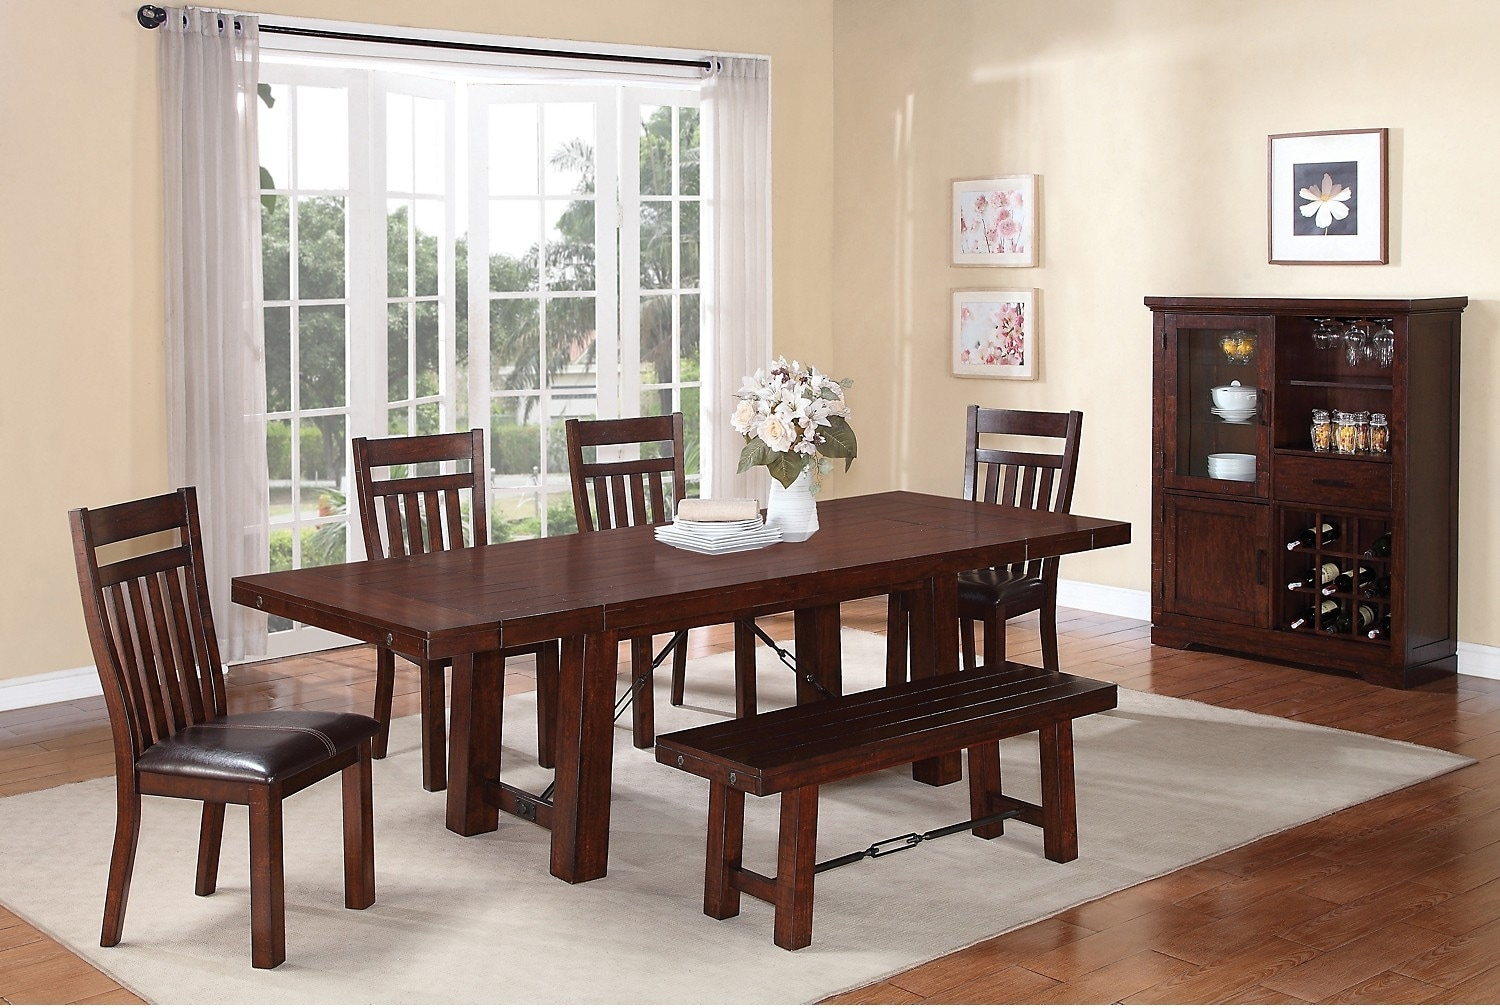 Sonoma 7-Piece Dining Package with Bench